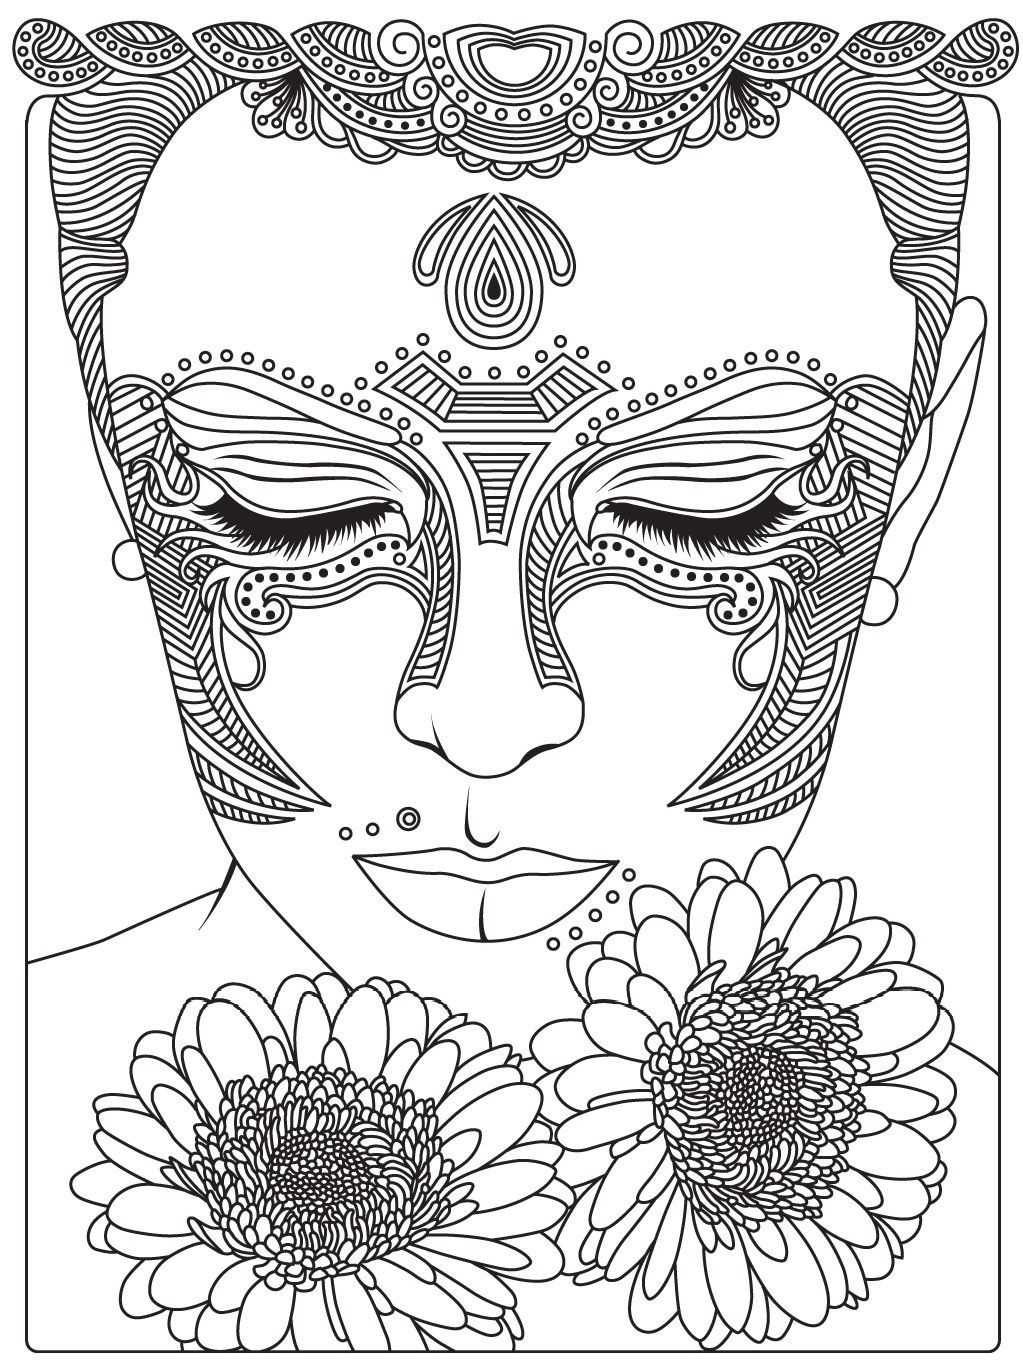 1023x1369 Coloring Pages Adult For App